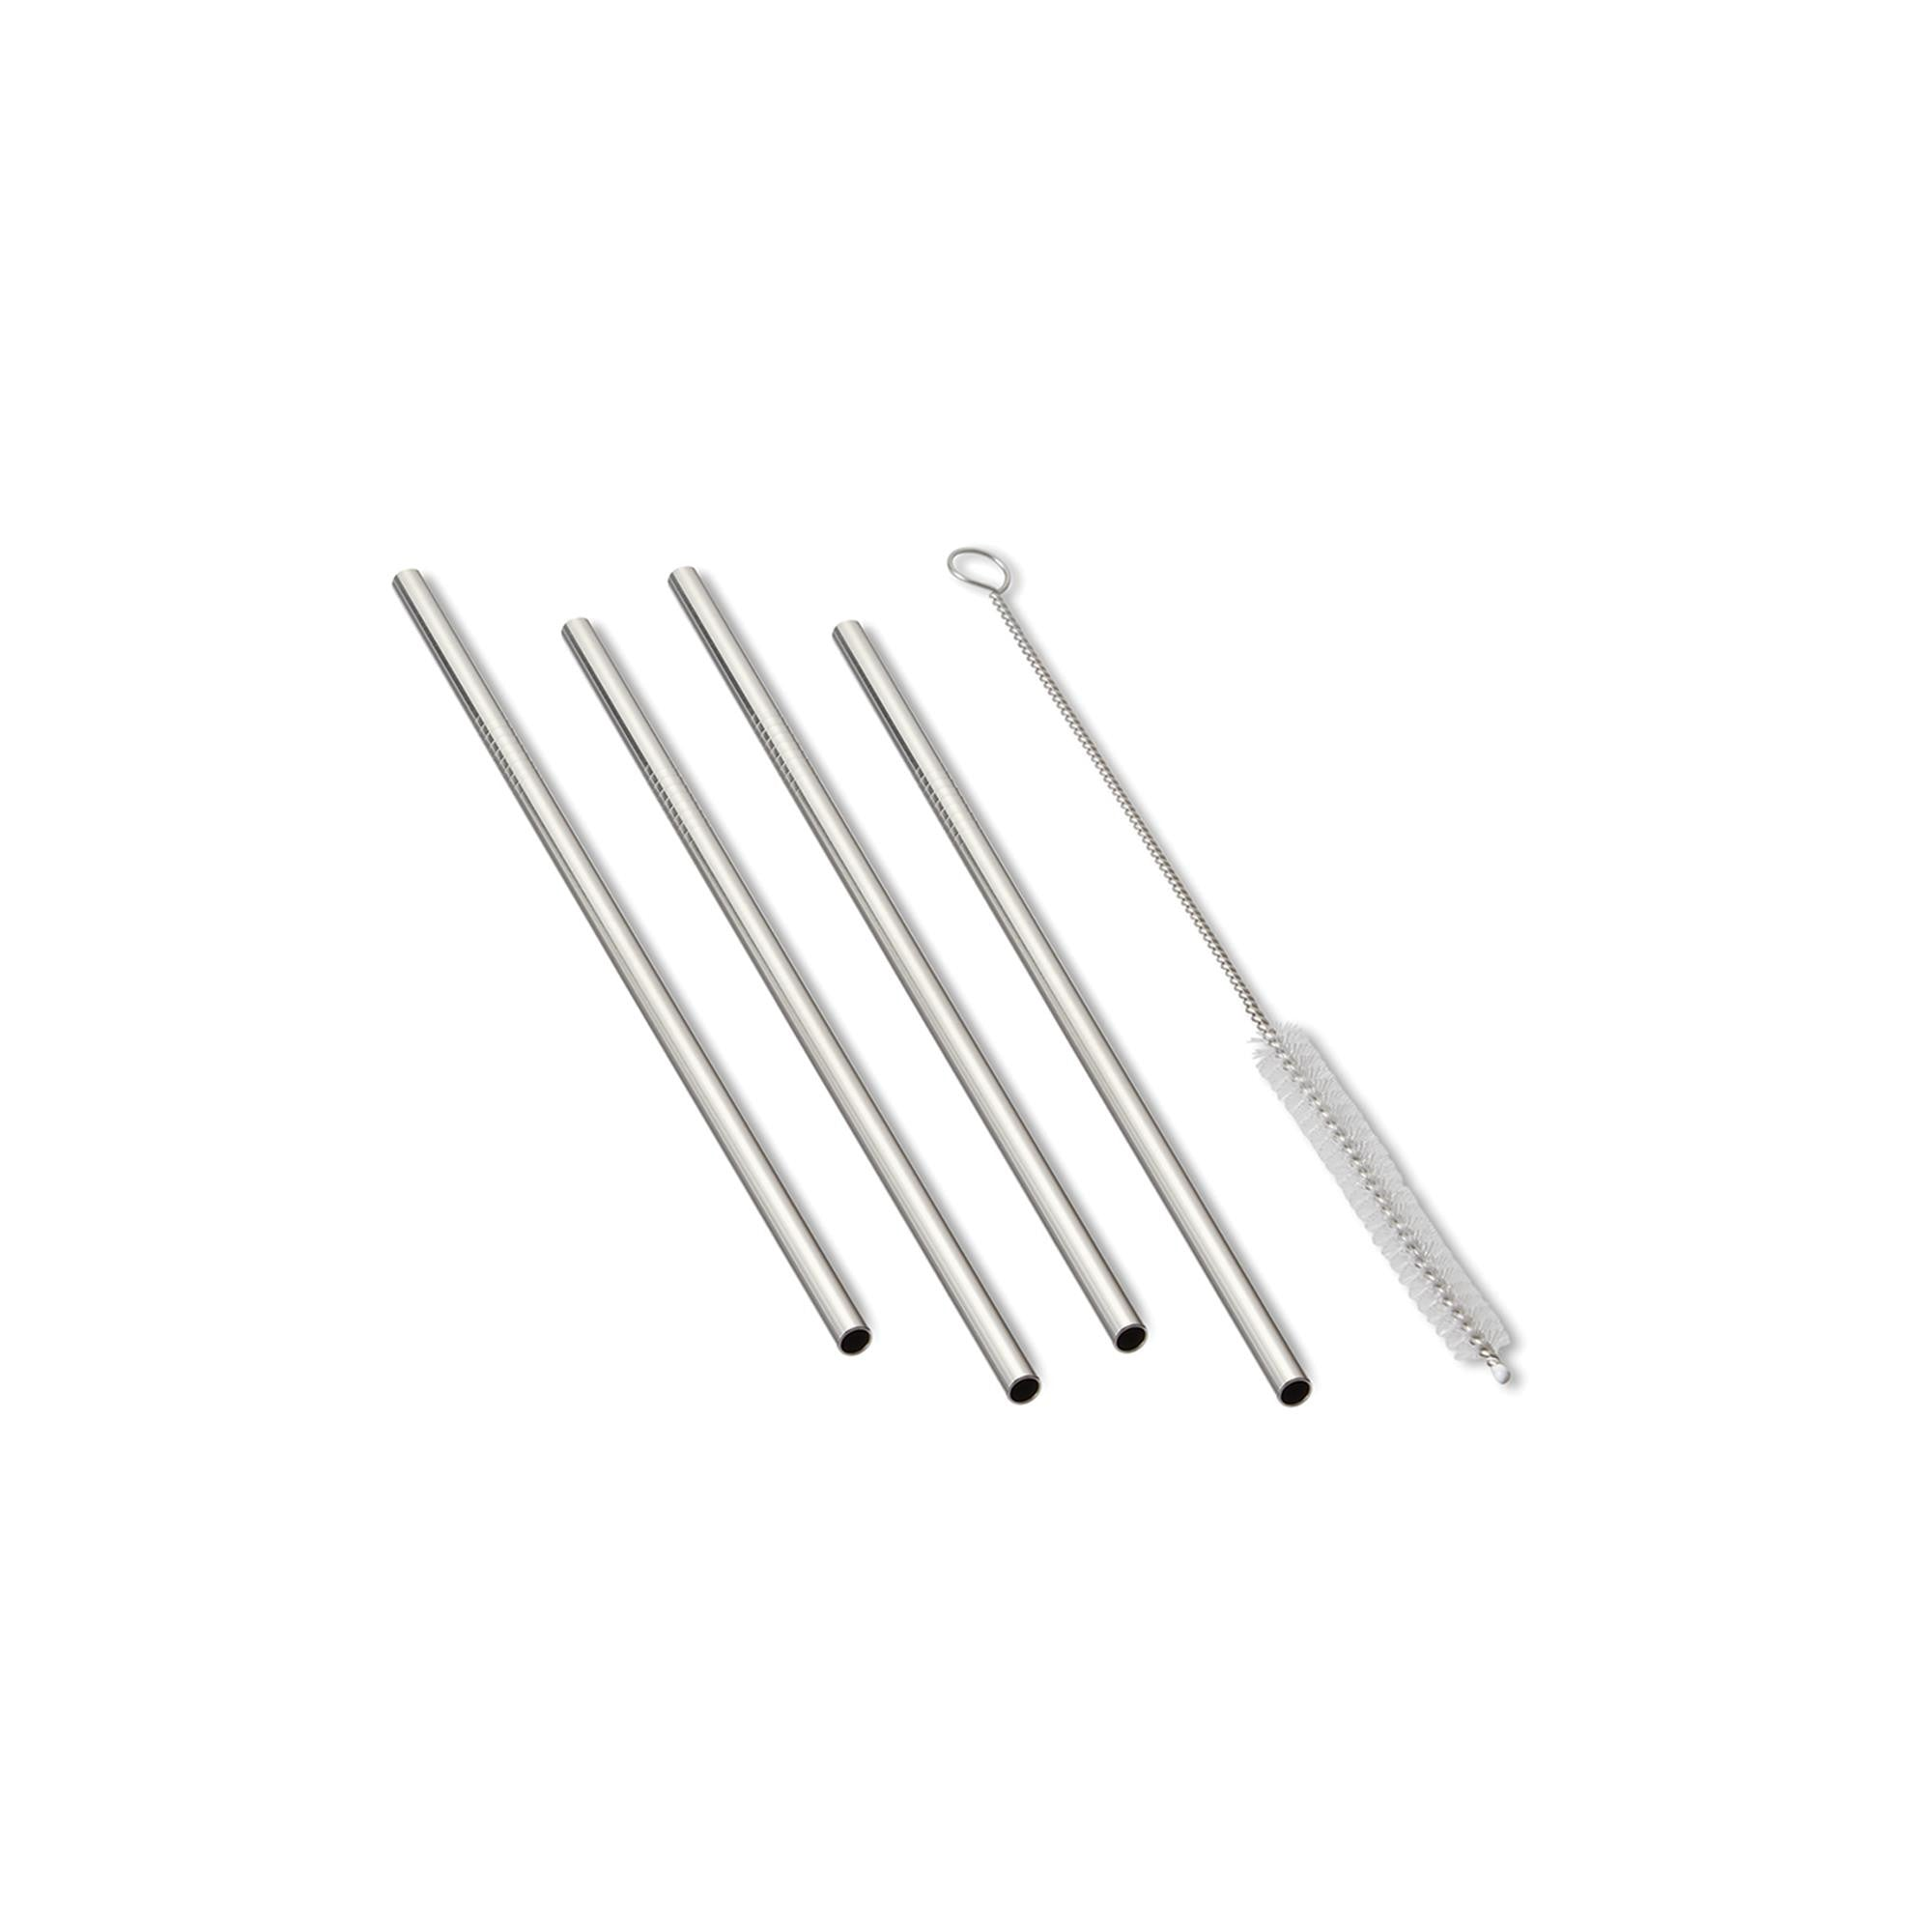 Outset Stainless Steel Reusable Drinking Straws, Straight